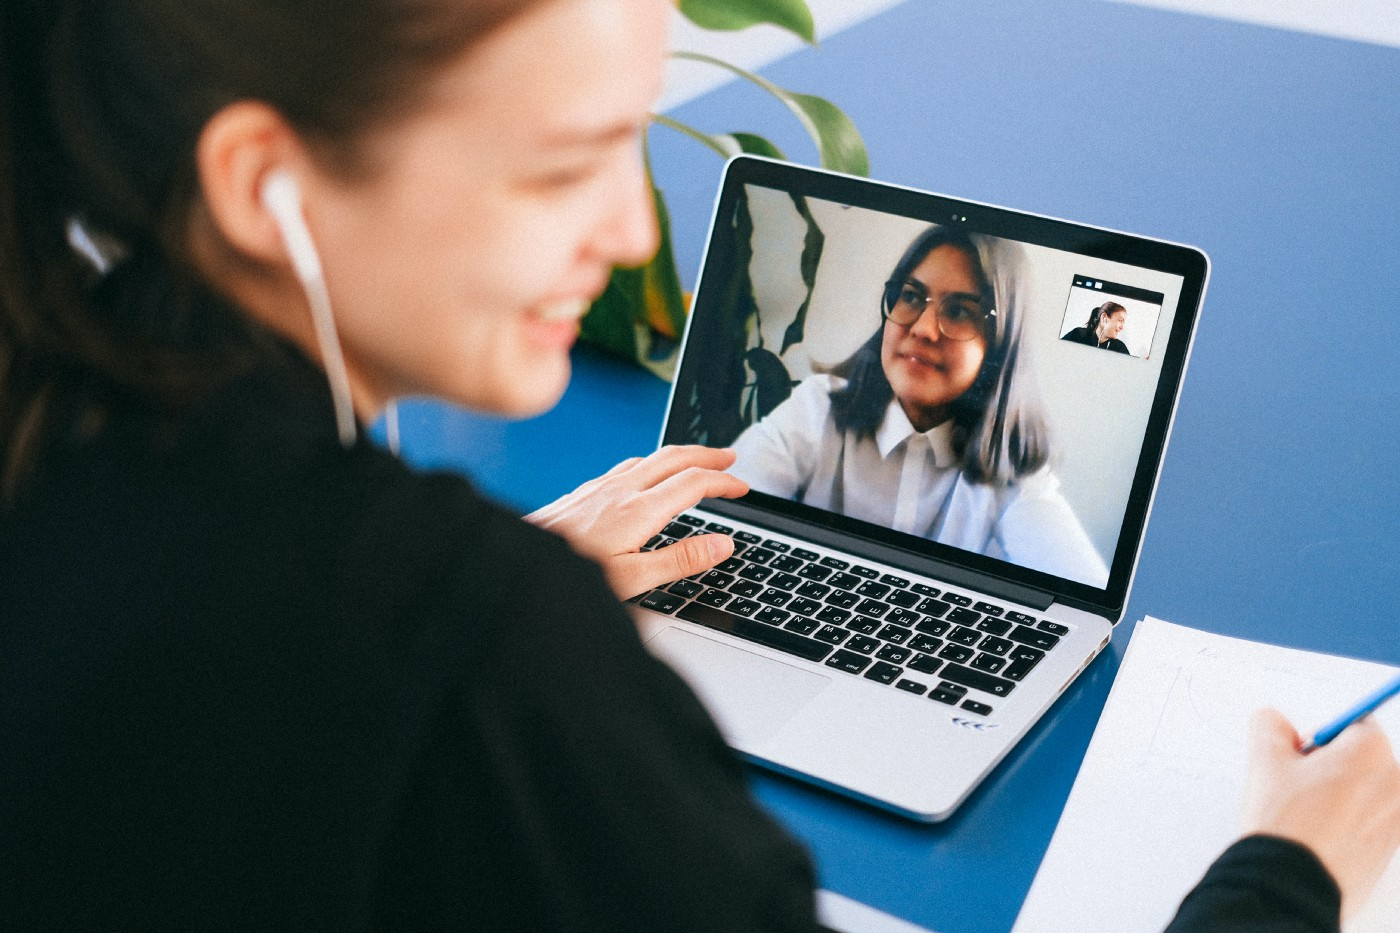 Woman on a video call on her laptop